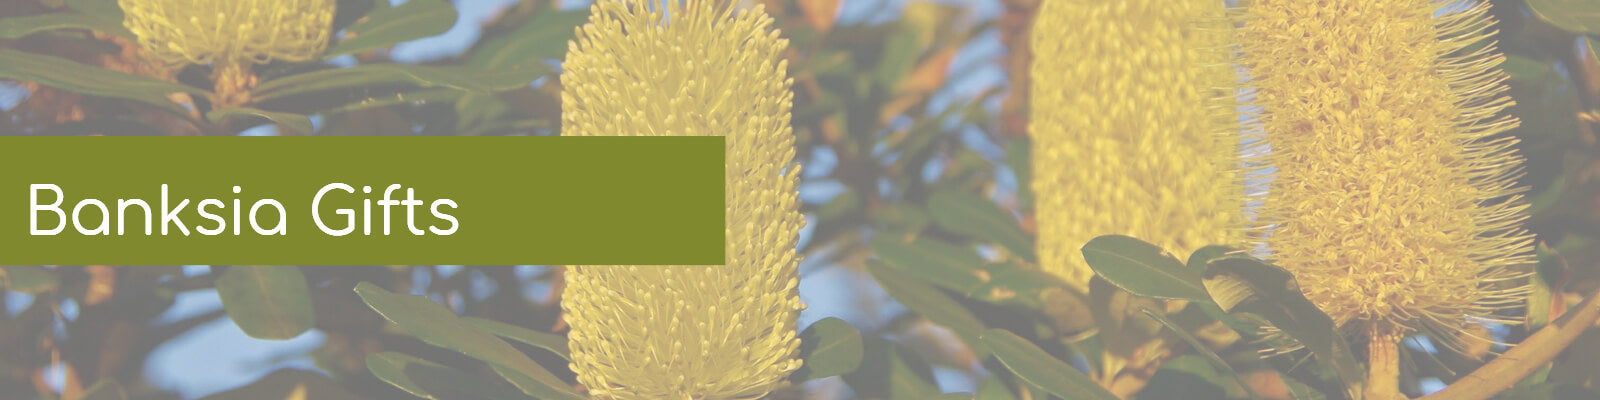 Banksia Gifts Australia products at Wellbeing Choices - AfterPay zipMoney